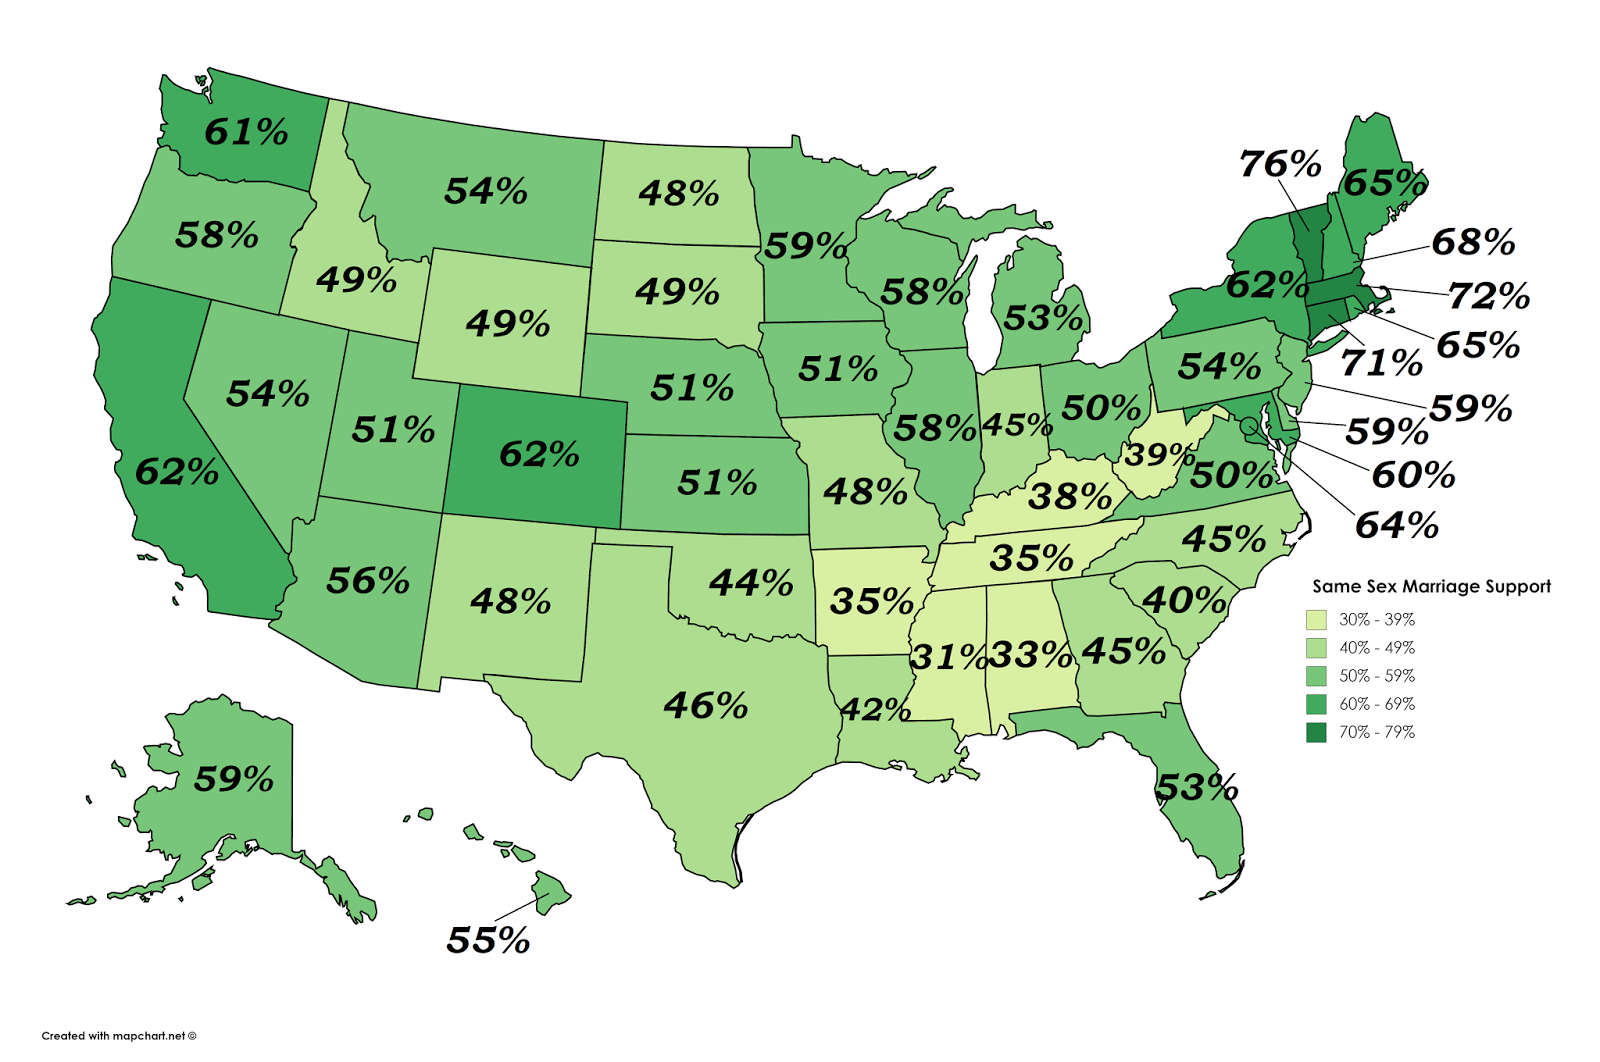 Support of Same-Sex Marriage in the U.S.